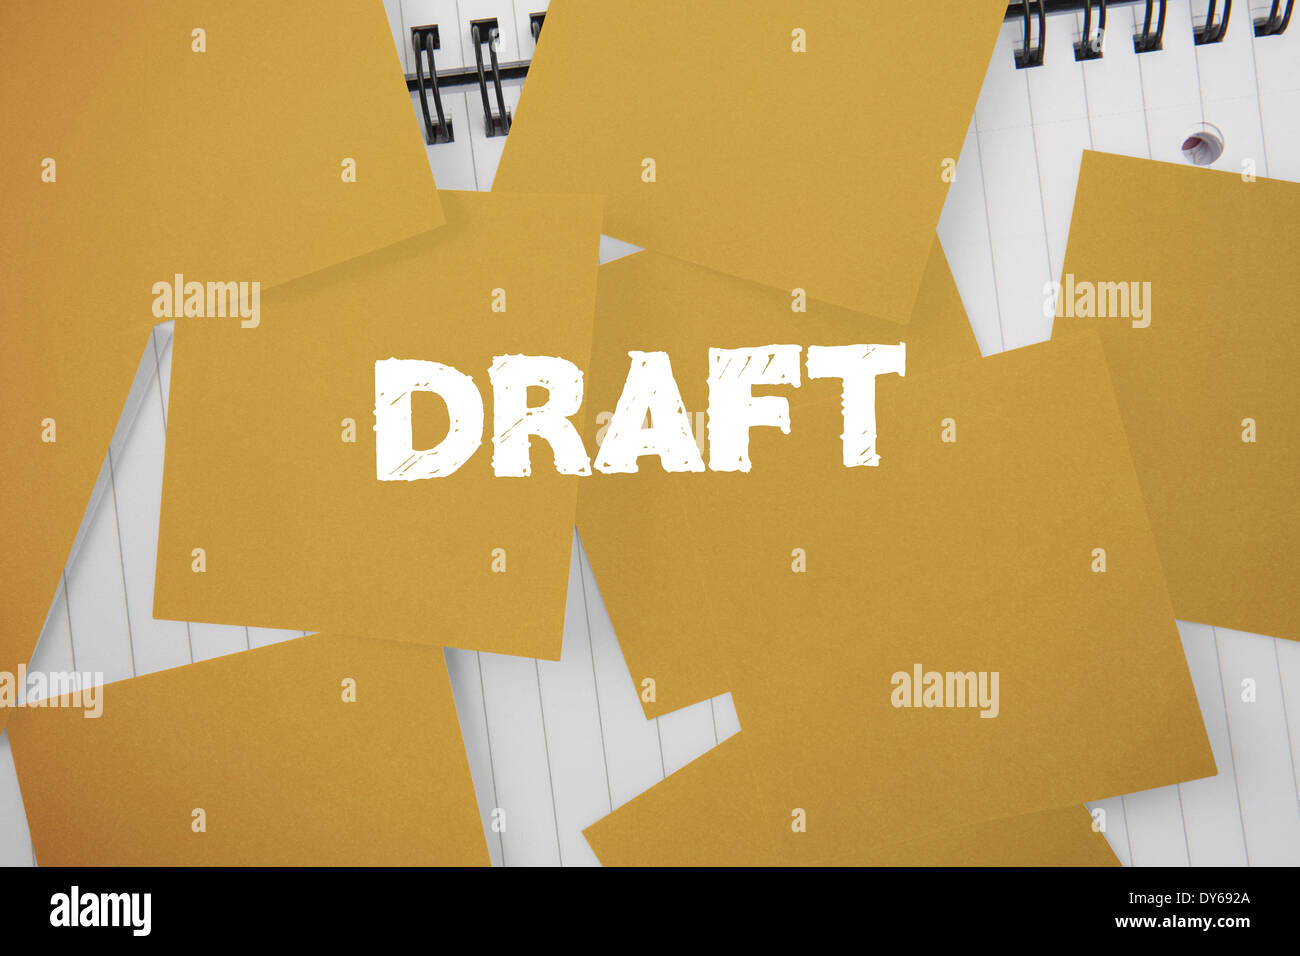 Draft against yellow paper strewn over notepad - Stock Image